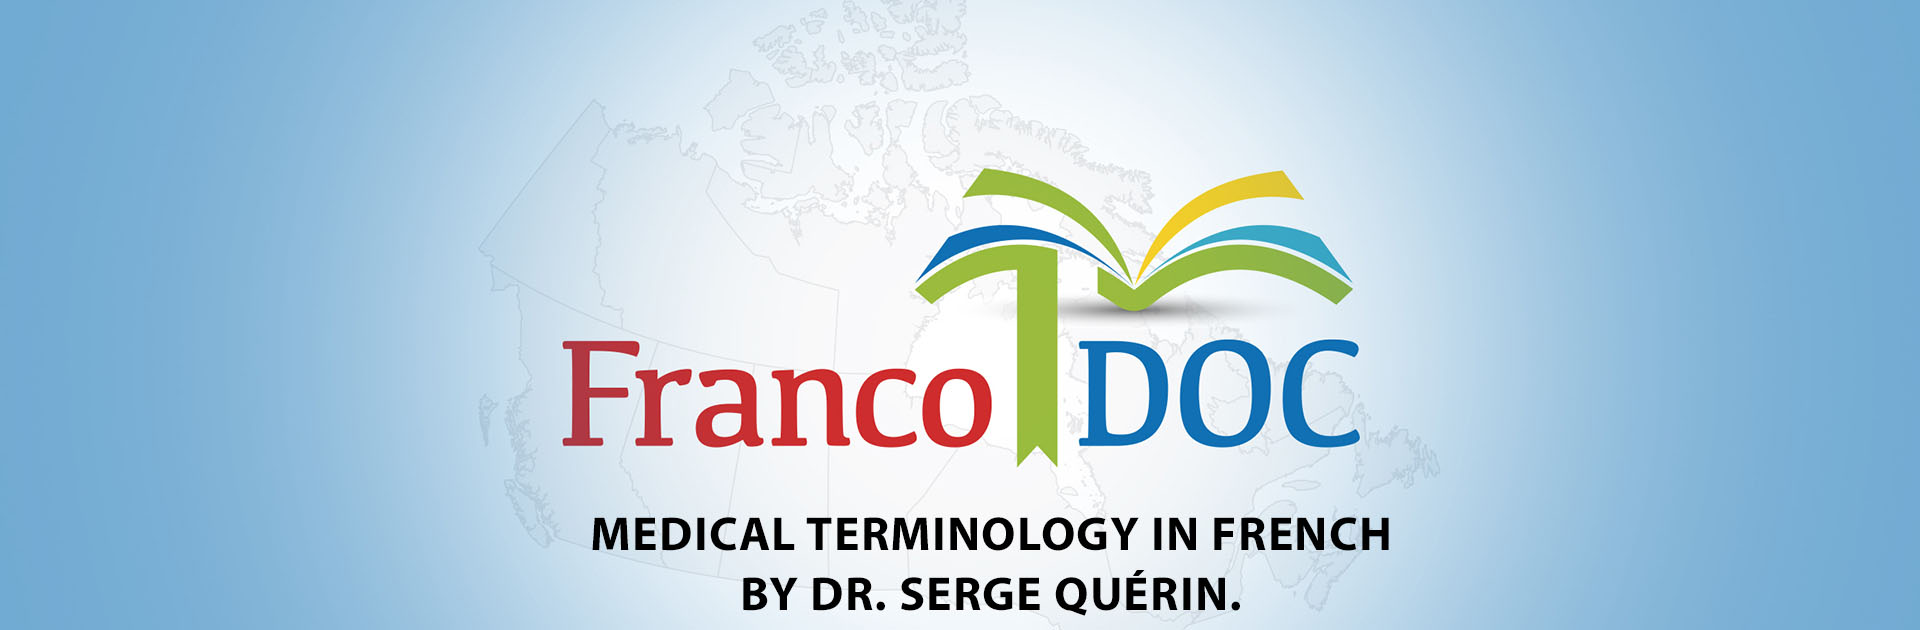 Medical terminology in French